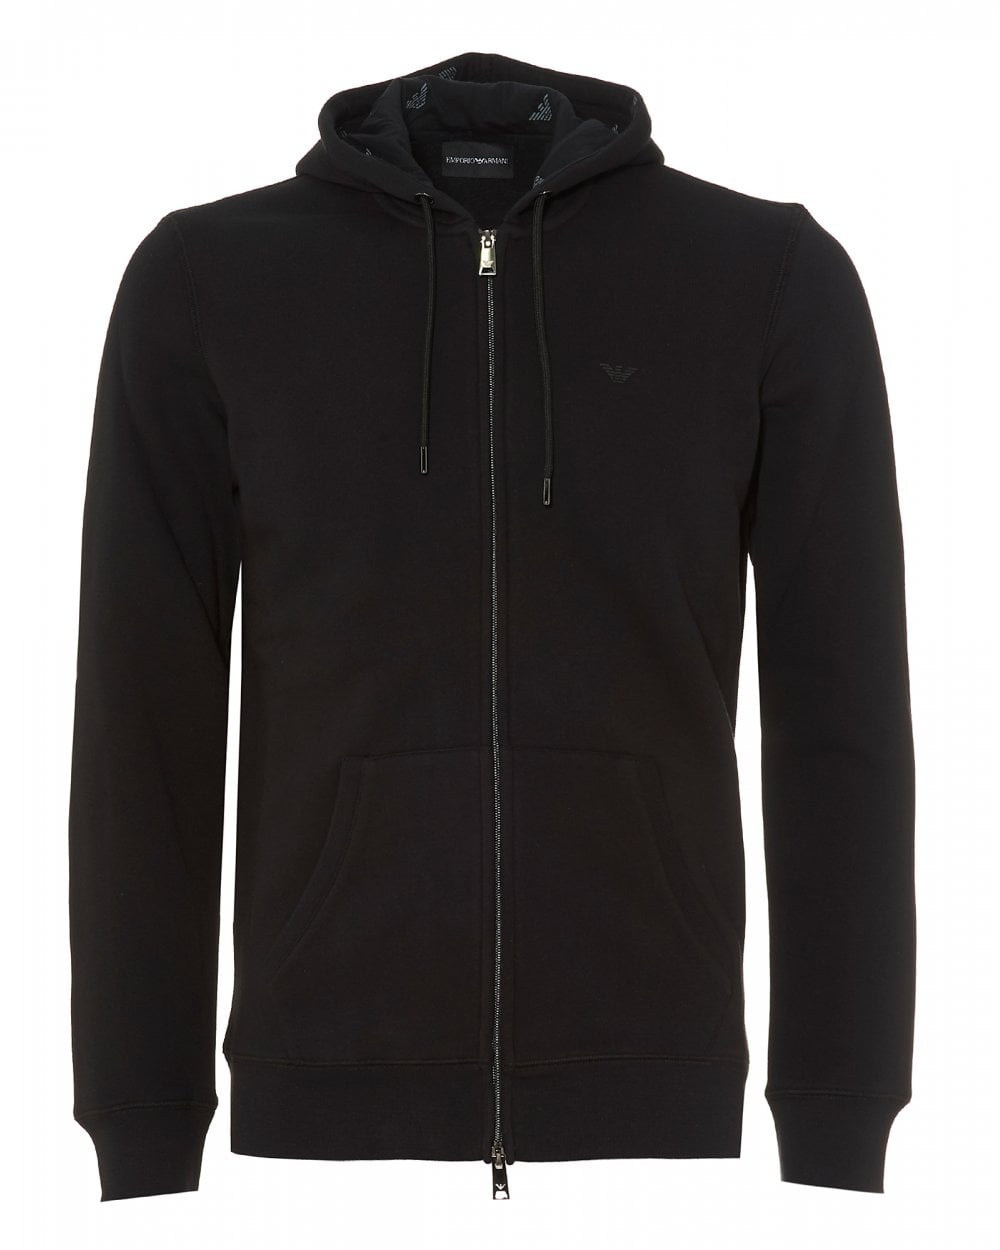 94e8dcc09 Emporio Armani Mens Zip Logo Hoodie, Black Hooded Sweatshirt